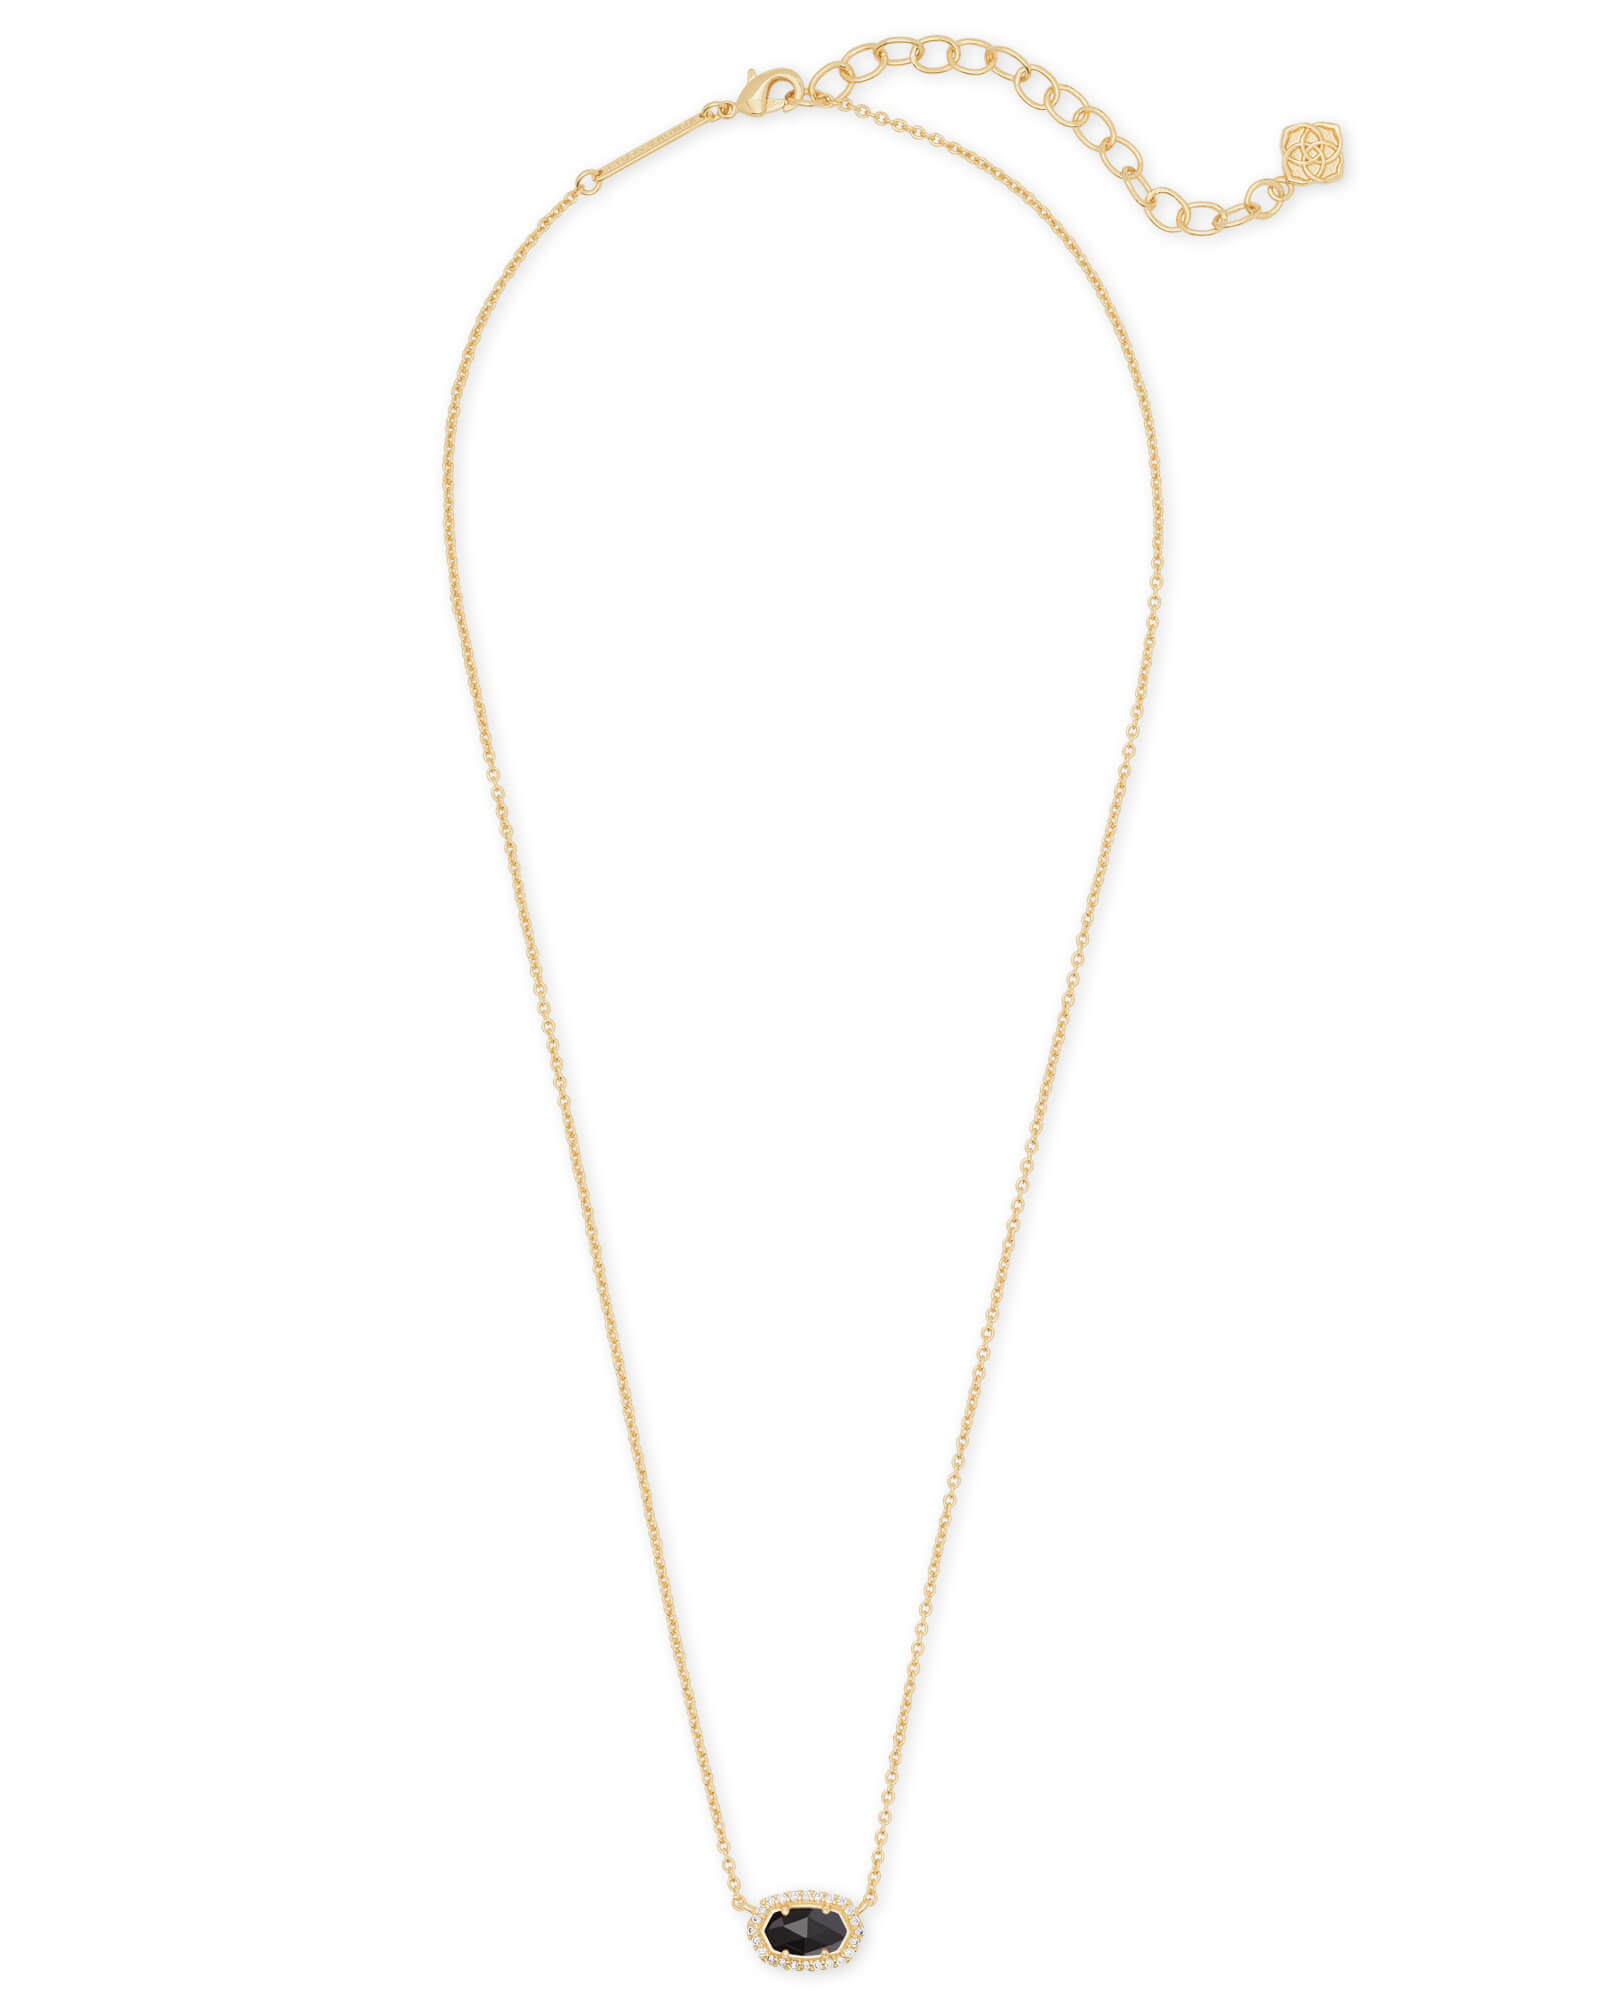 Chelsea Gold Pendant Necklace in Black